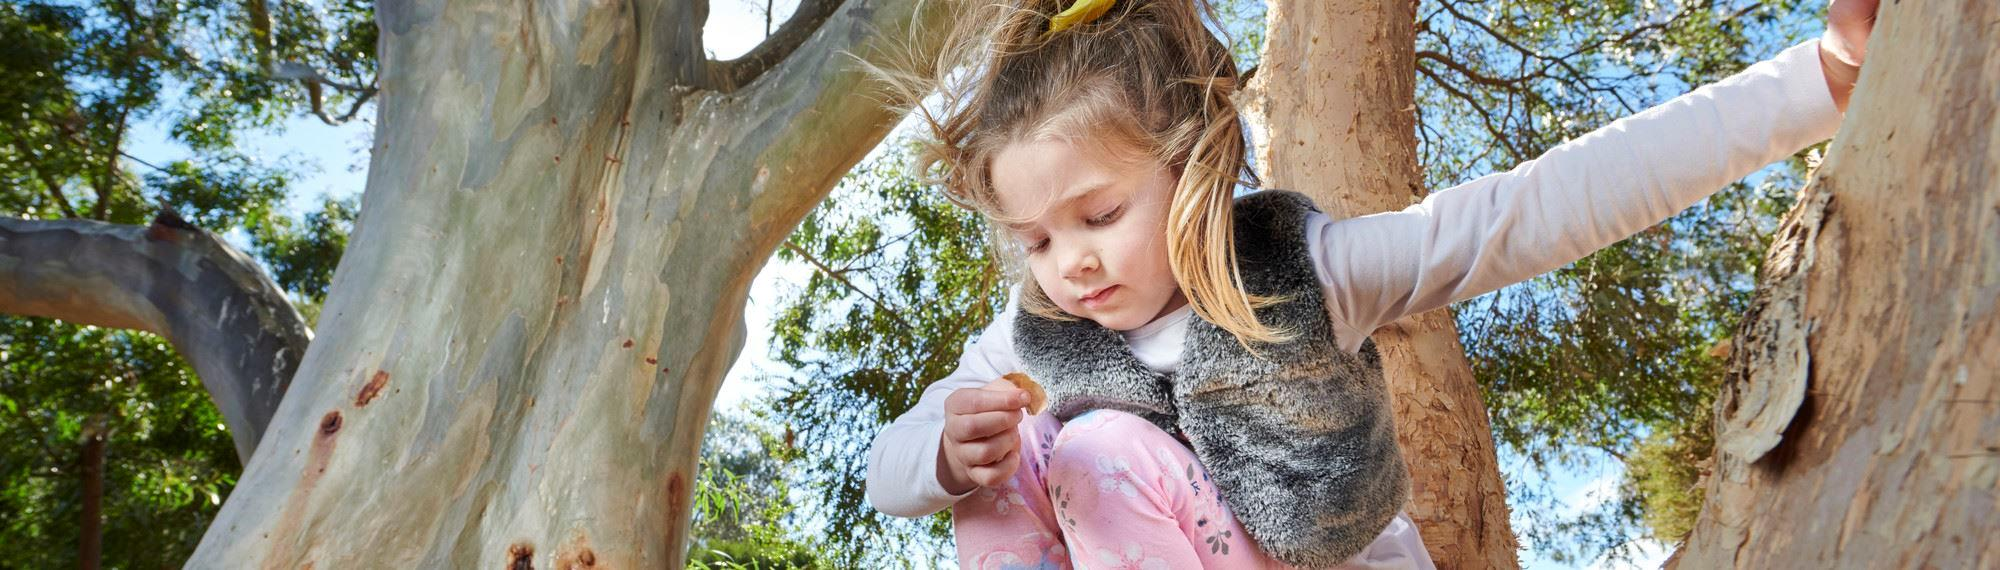 Young girl in a eucalyptus tree.